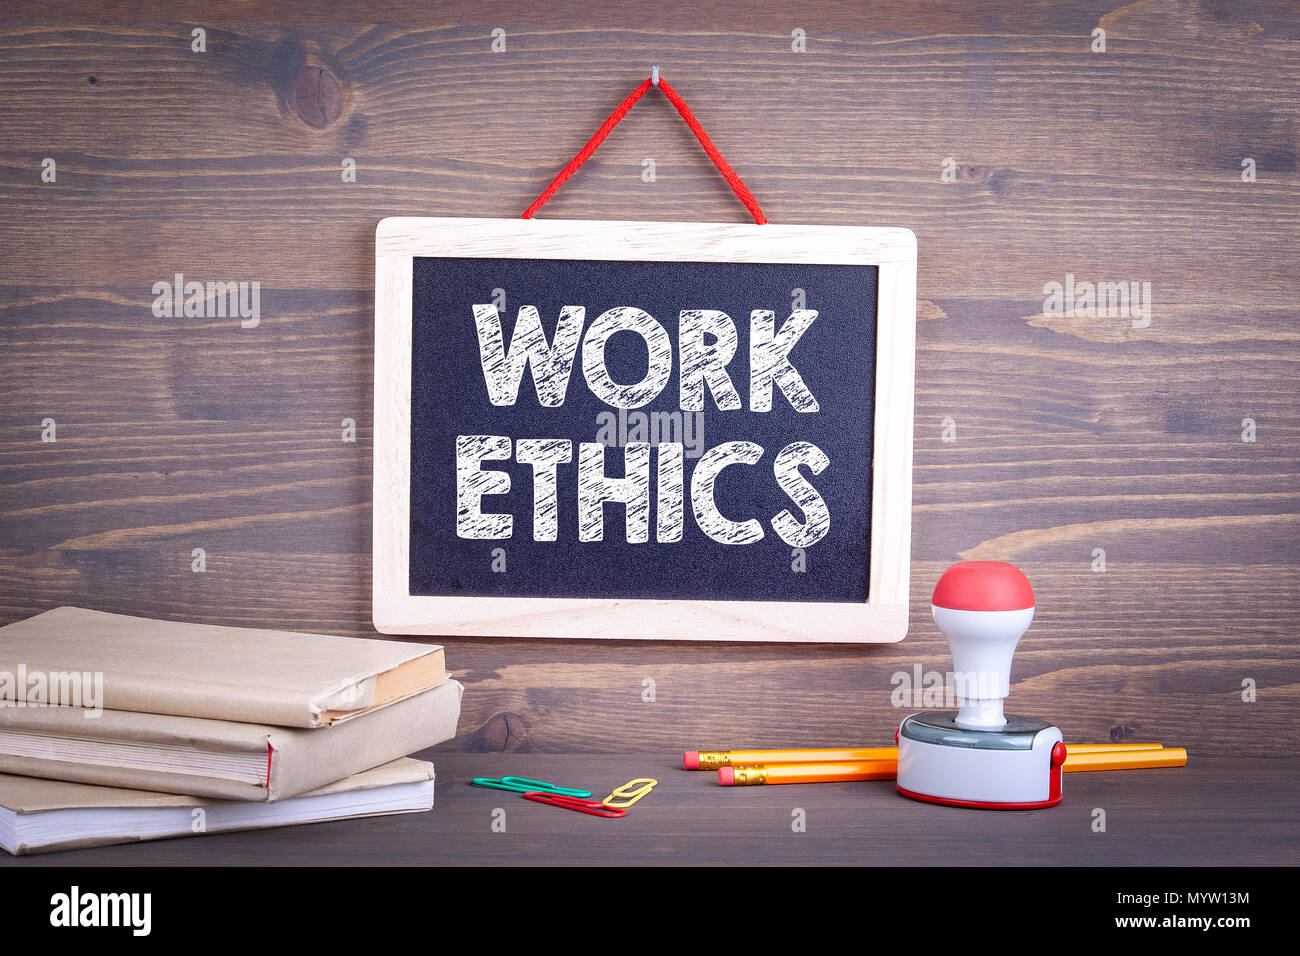 Work ethics, Business Concept - Stock Image